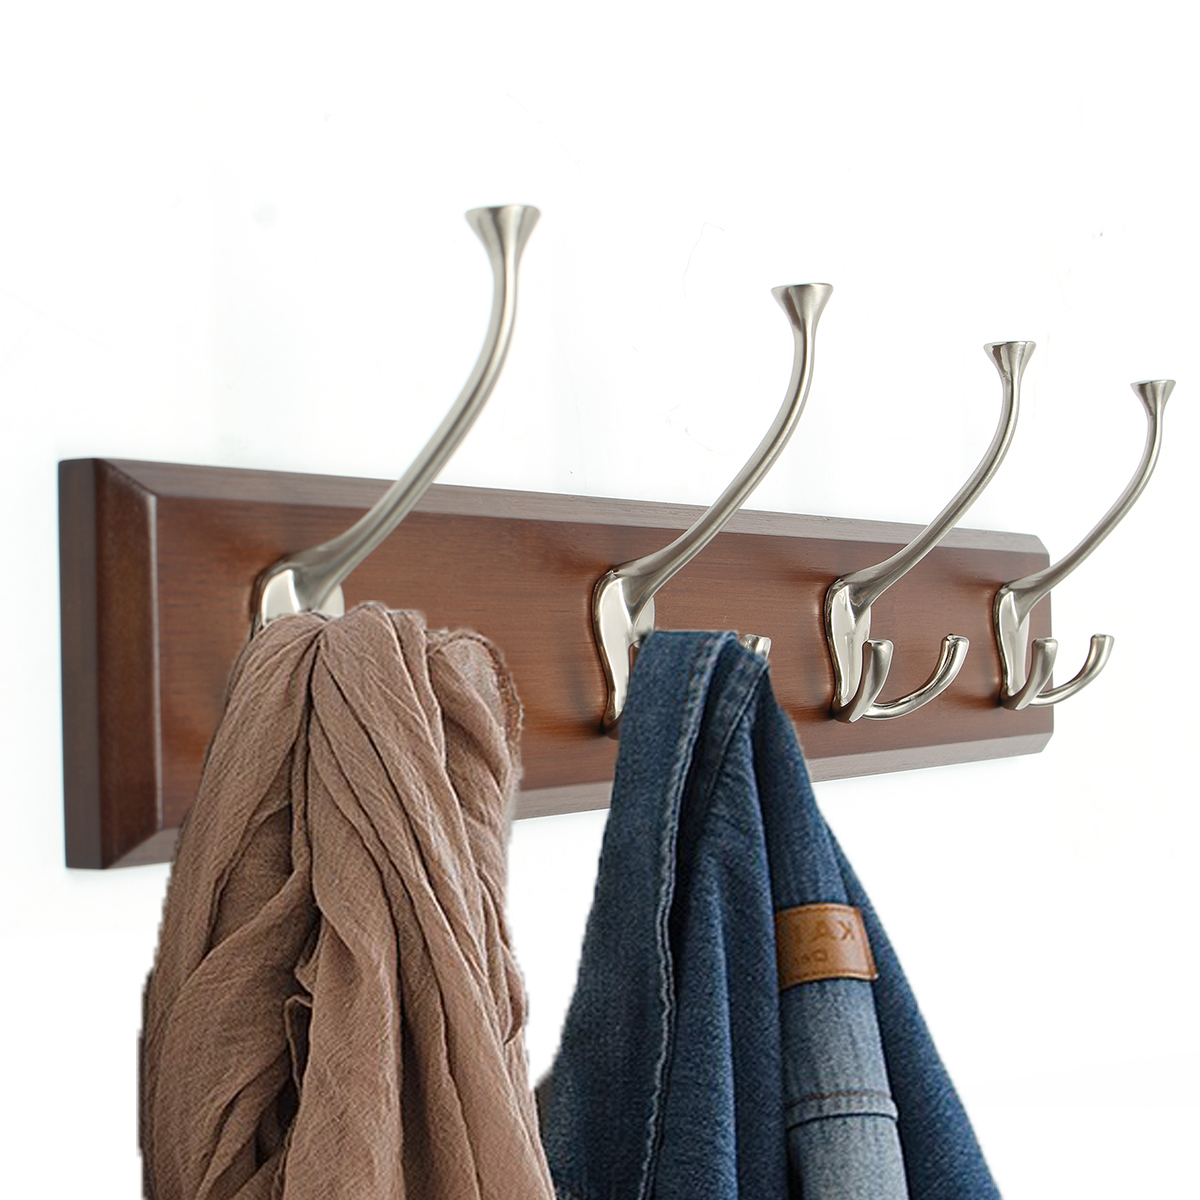 4 Hooks Vintage Bamboo Coat Rack Hanging Hook Towel Hanger Clothes Holder Wall Mounted